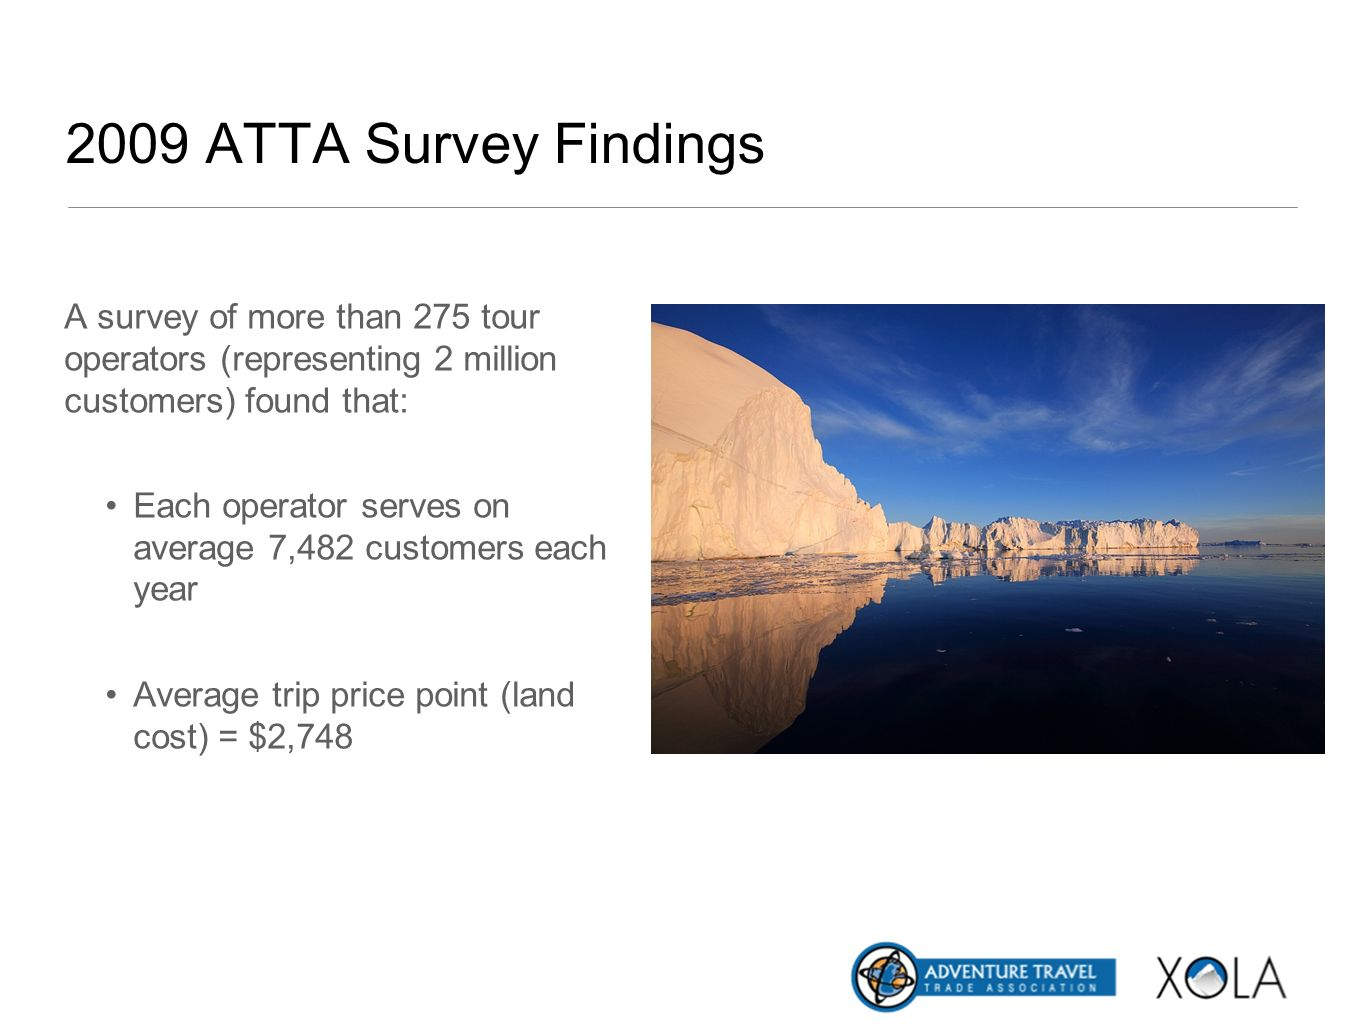 2009 ATTA Survey FindingsA survey of more than 275 tour operators (representing 2 million customers) found that: